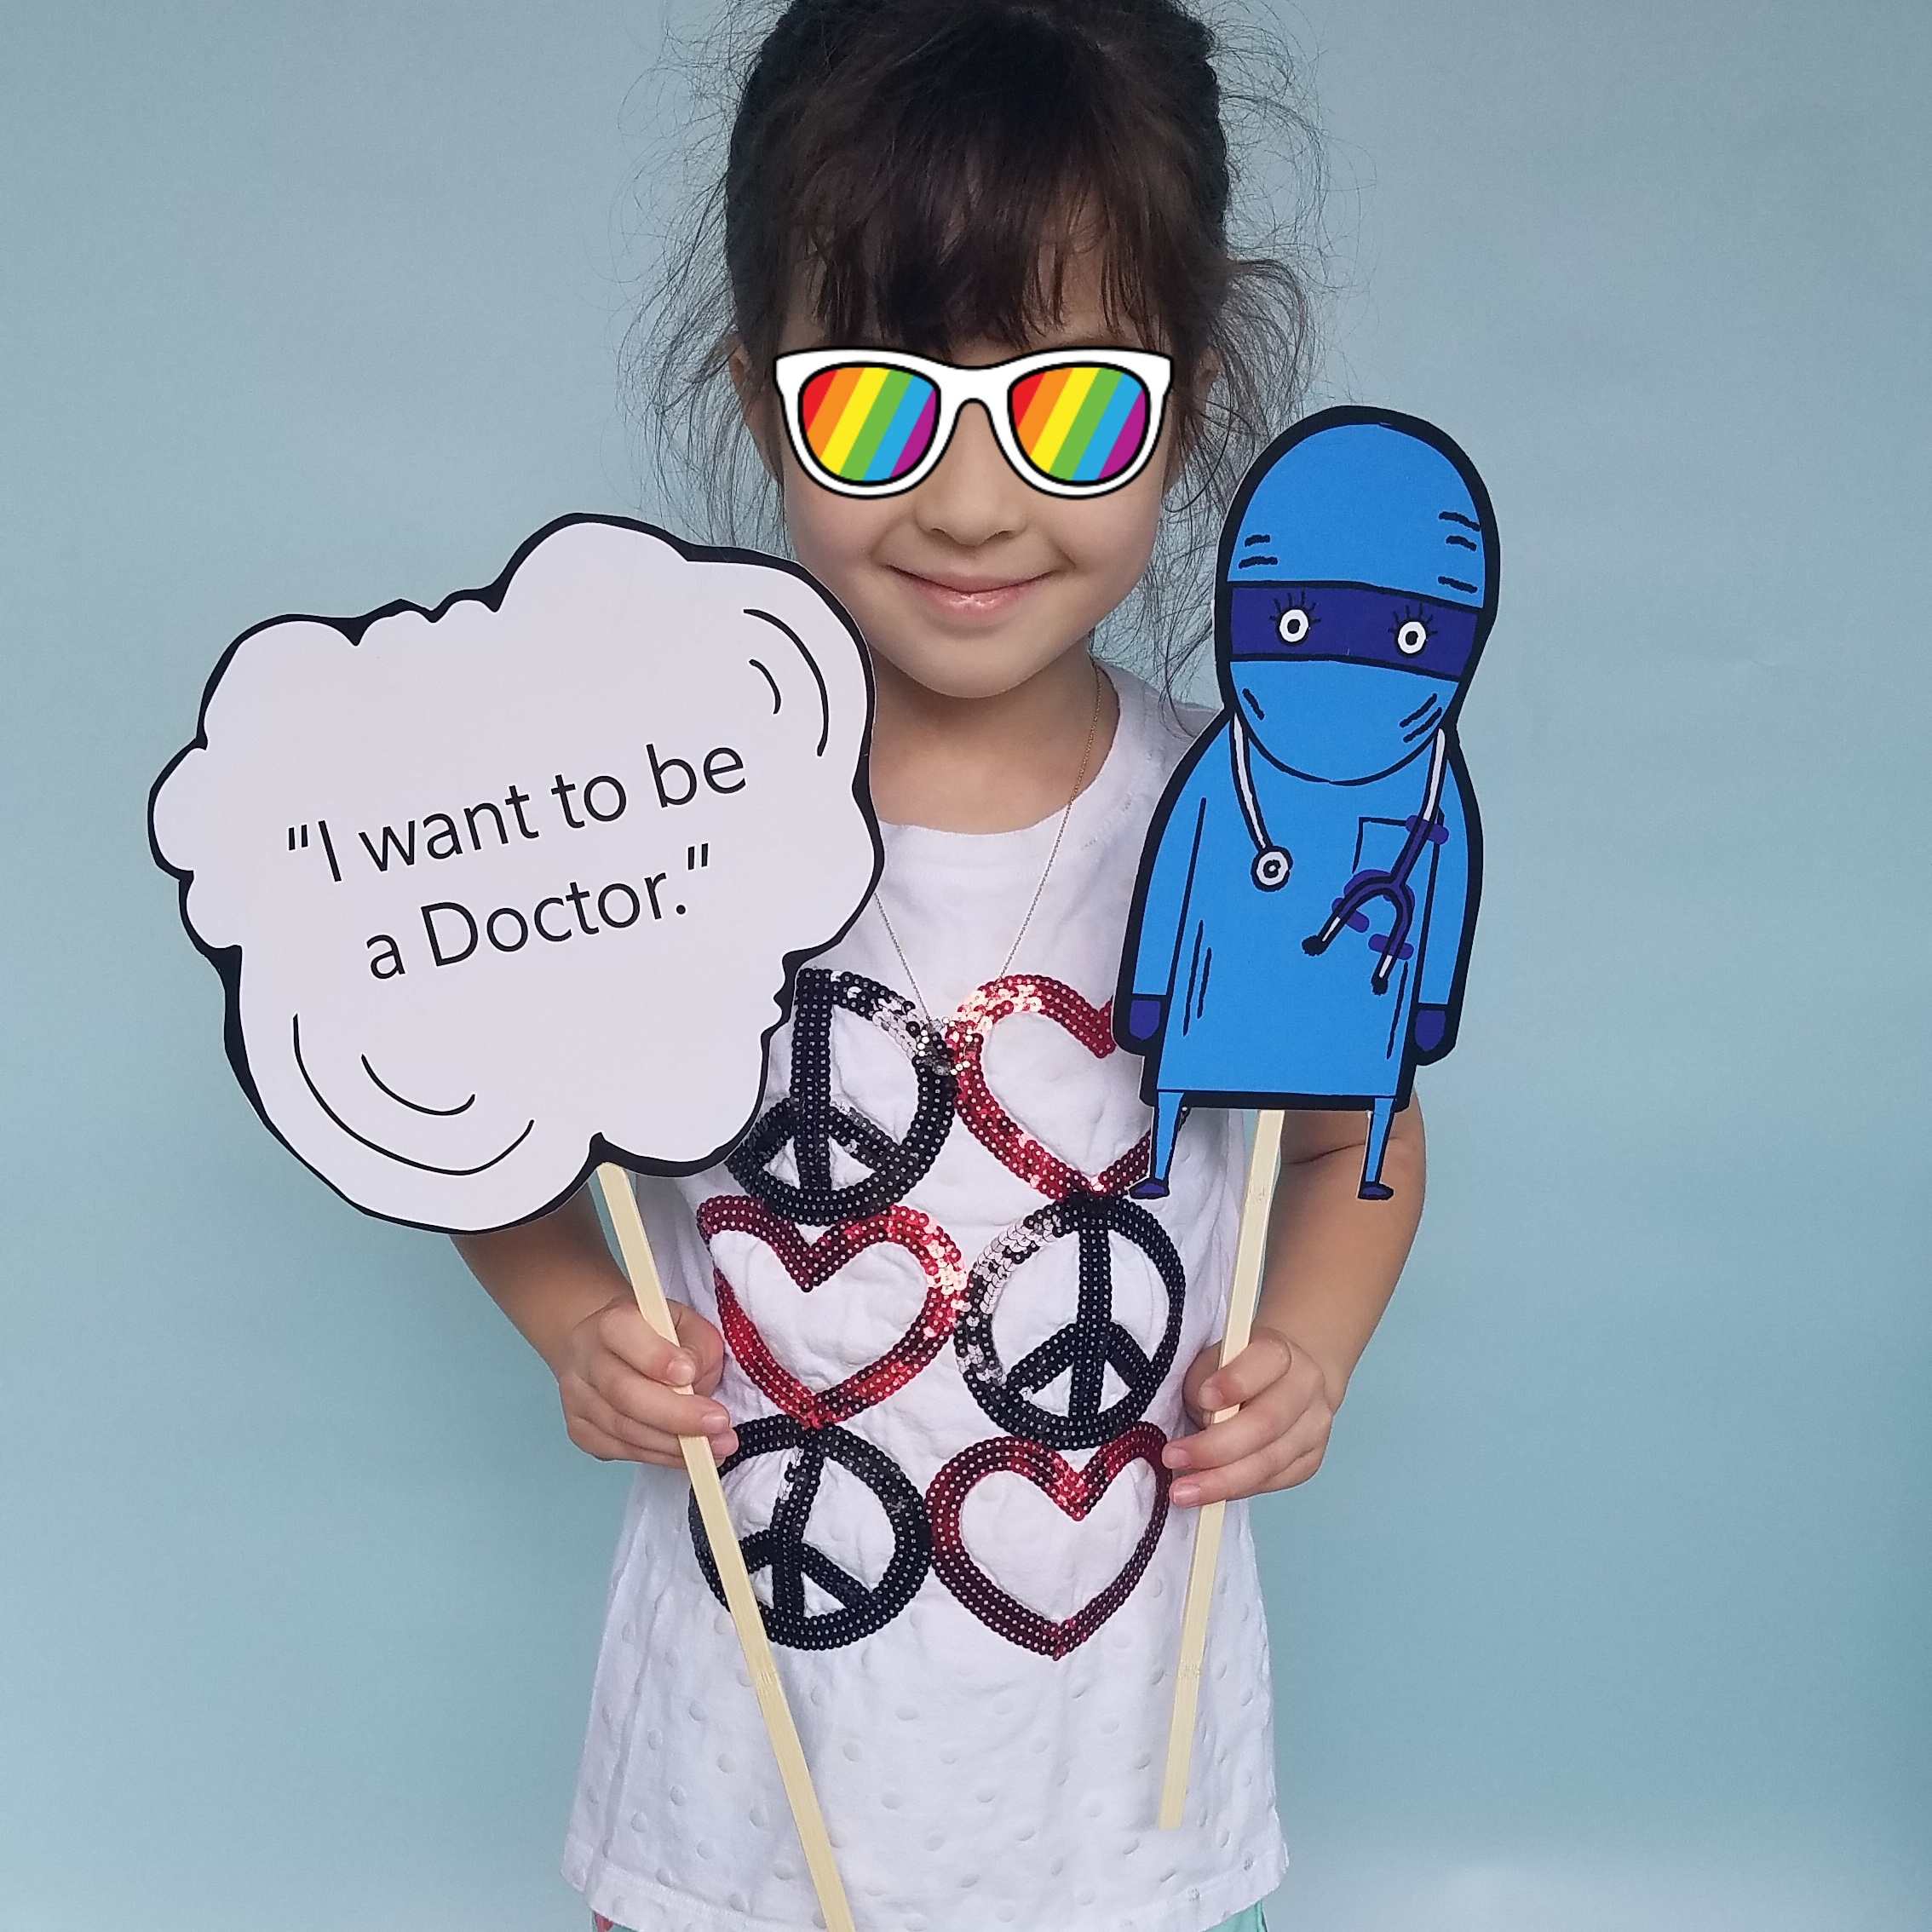 If Violet does, in fact, decide to become a doctor, I know my mom will be THRILLED.